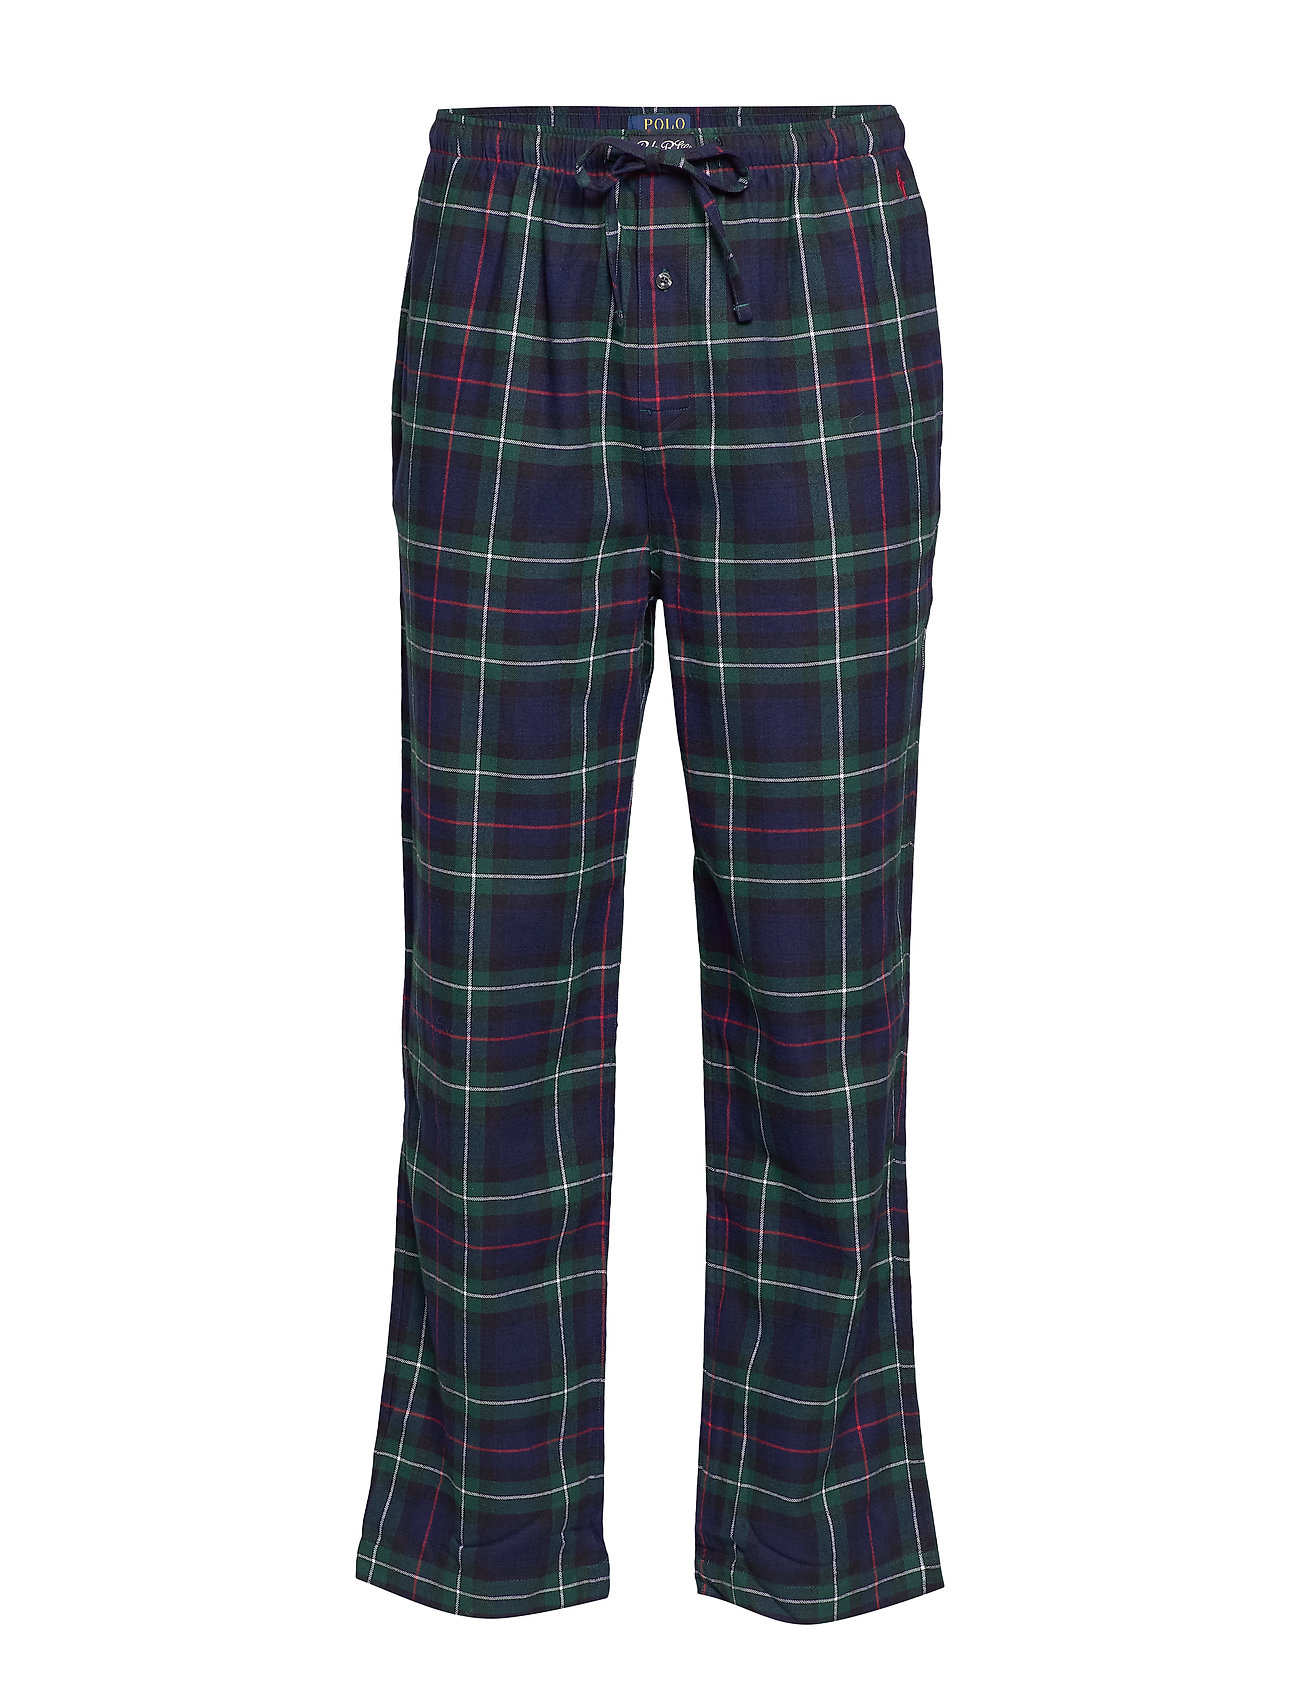 Polo Ralph Lauren Underwear PJ PANT-PANT-SLEEP BOTTOM - KESINGTON PLAID